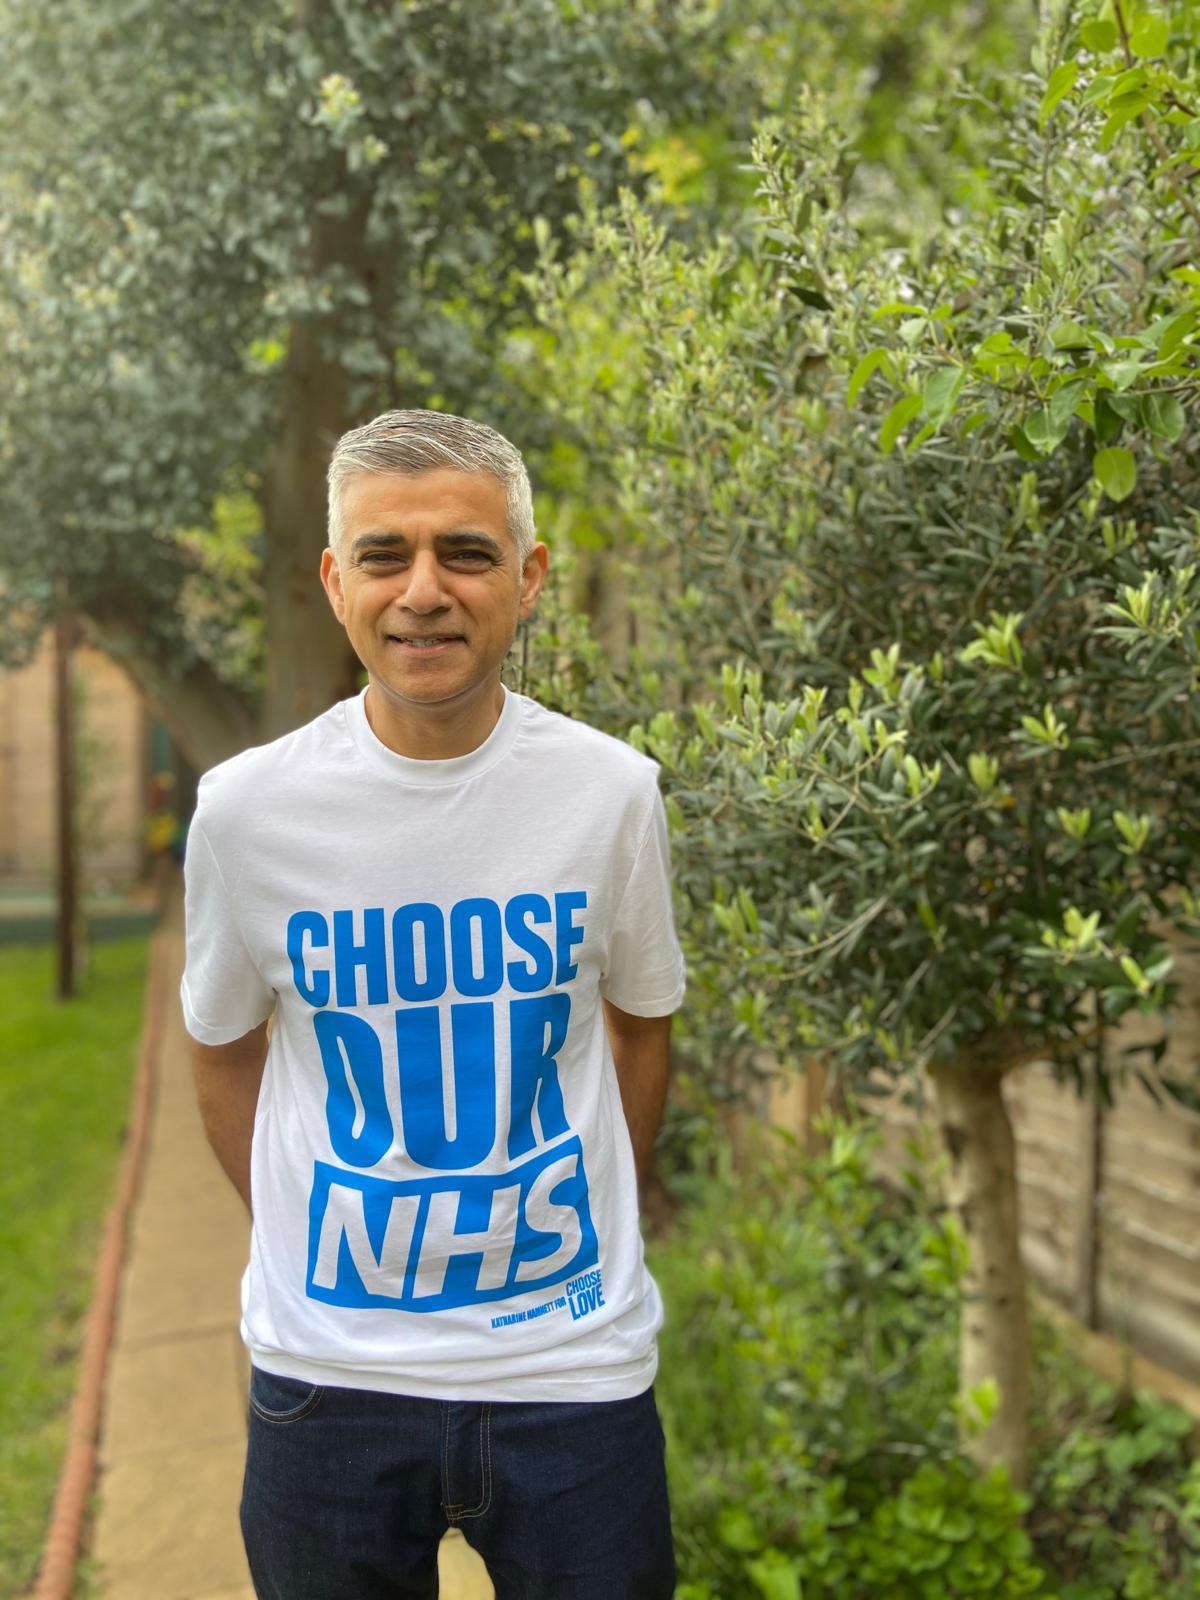 Choose Our NHS - Sadiq Khan